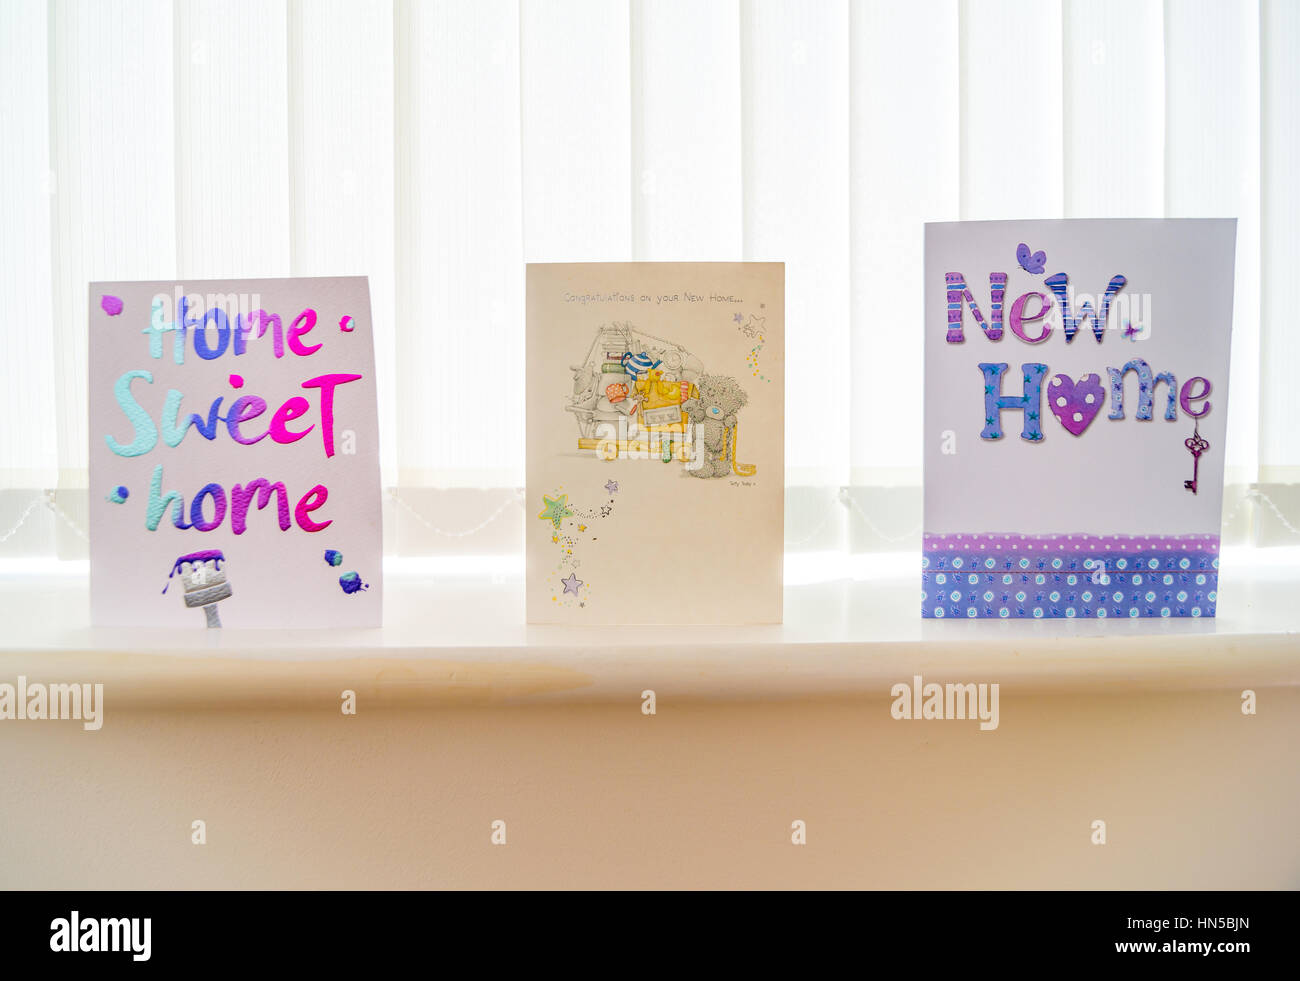 New home greetings card stock photos new home greetings card stock new home greeting cards arranges on a window sill stock image m4hsunfo